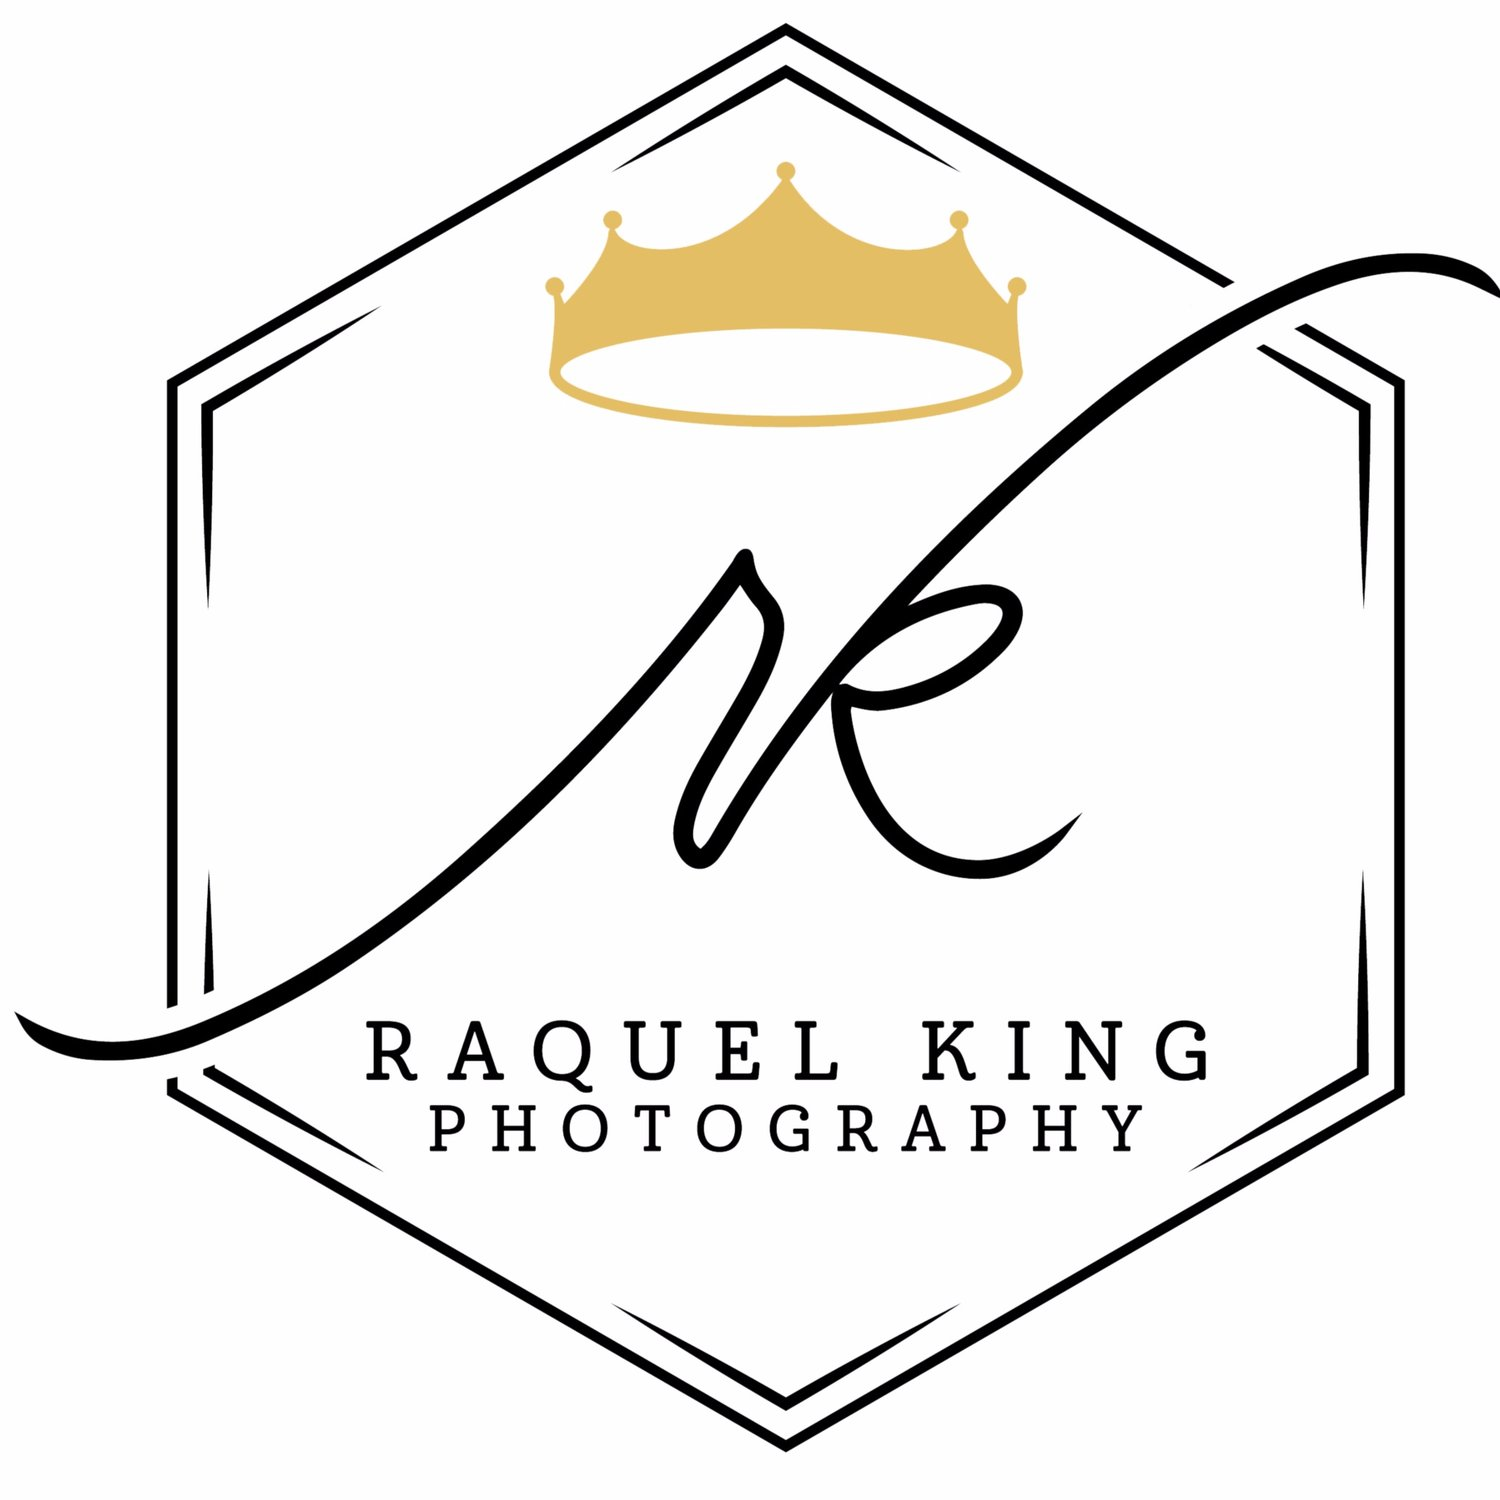 Raquel King Photography